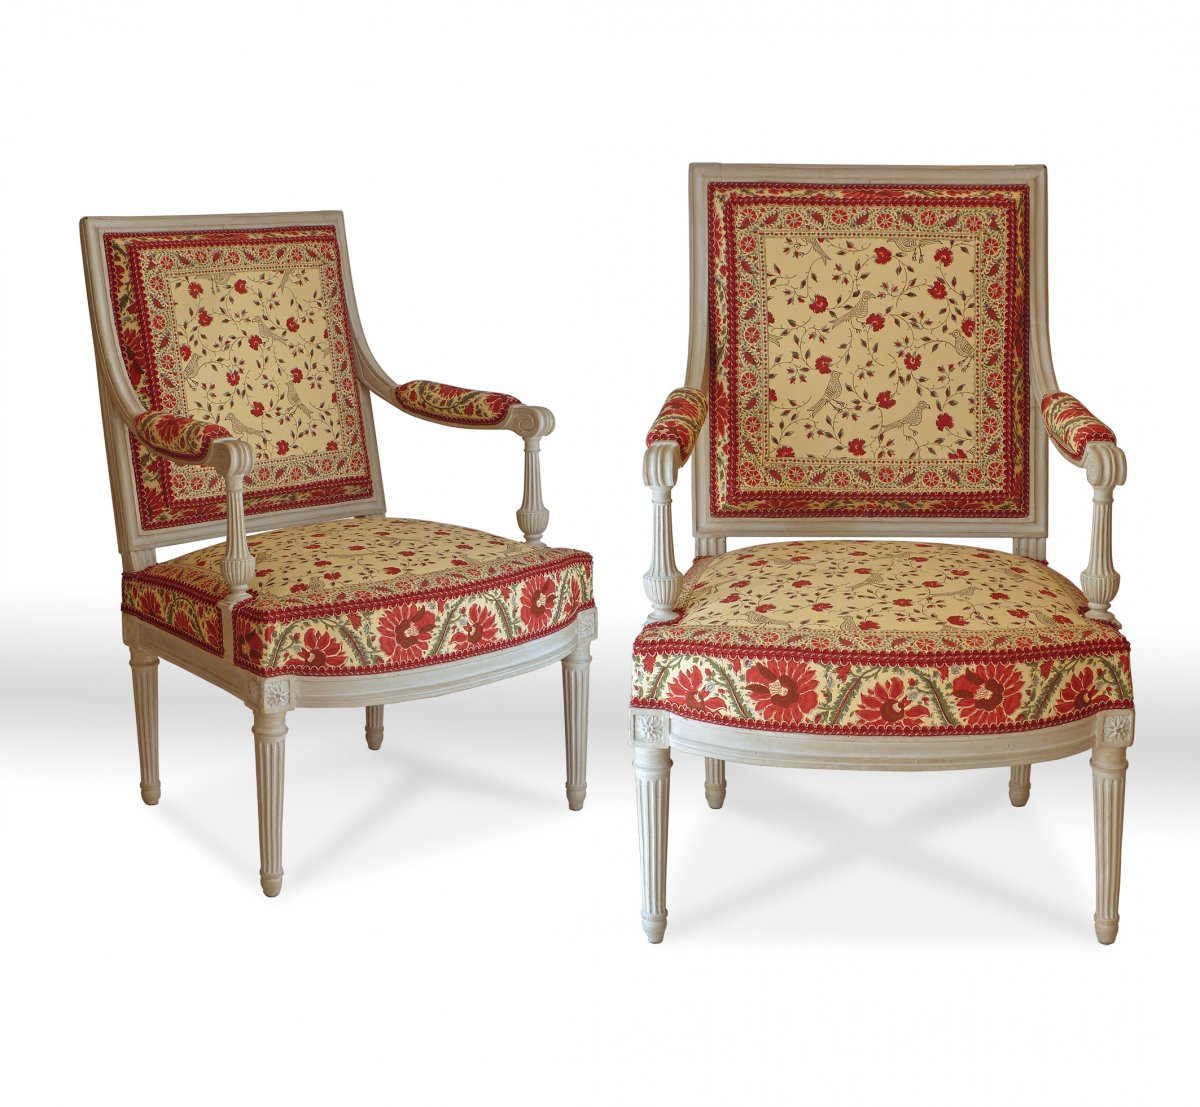 A Pair Of Large Louis XVI Fauteuils à La Reine Ref - Fauteuil louis xvi